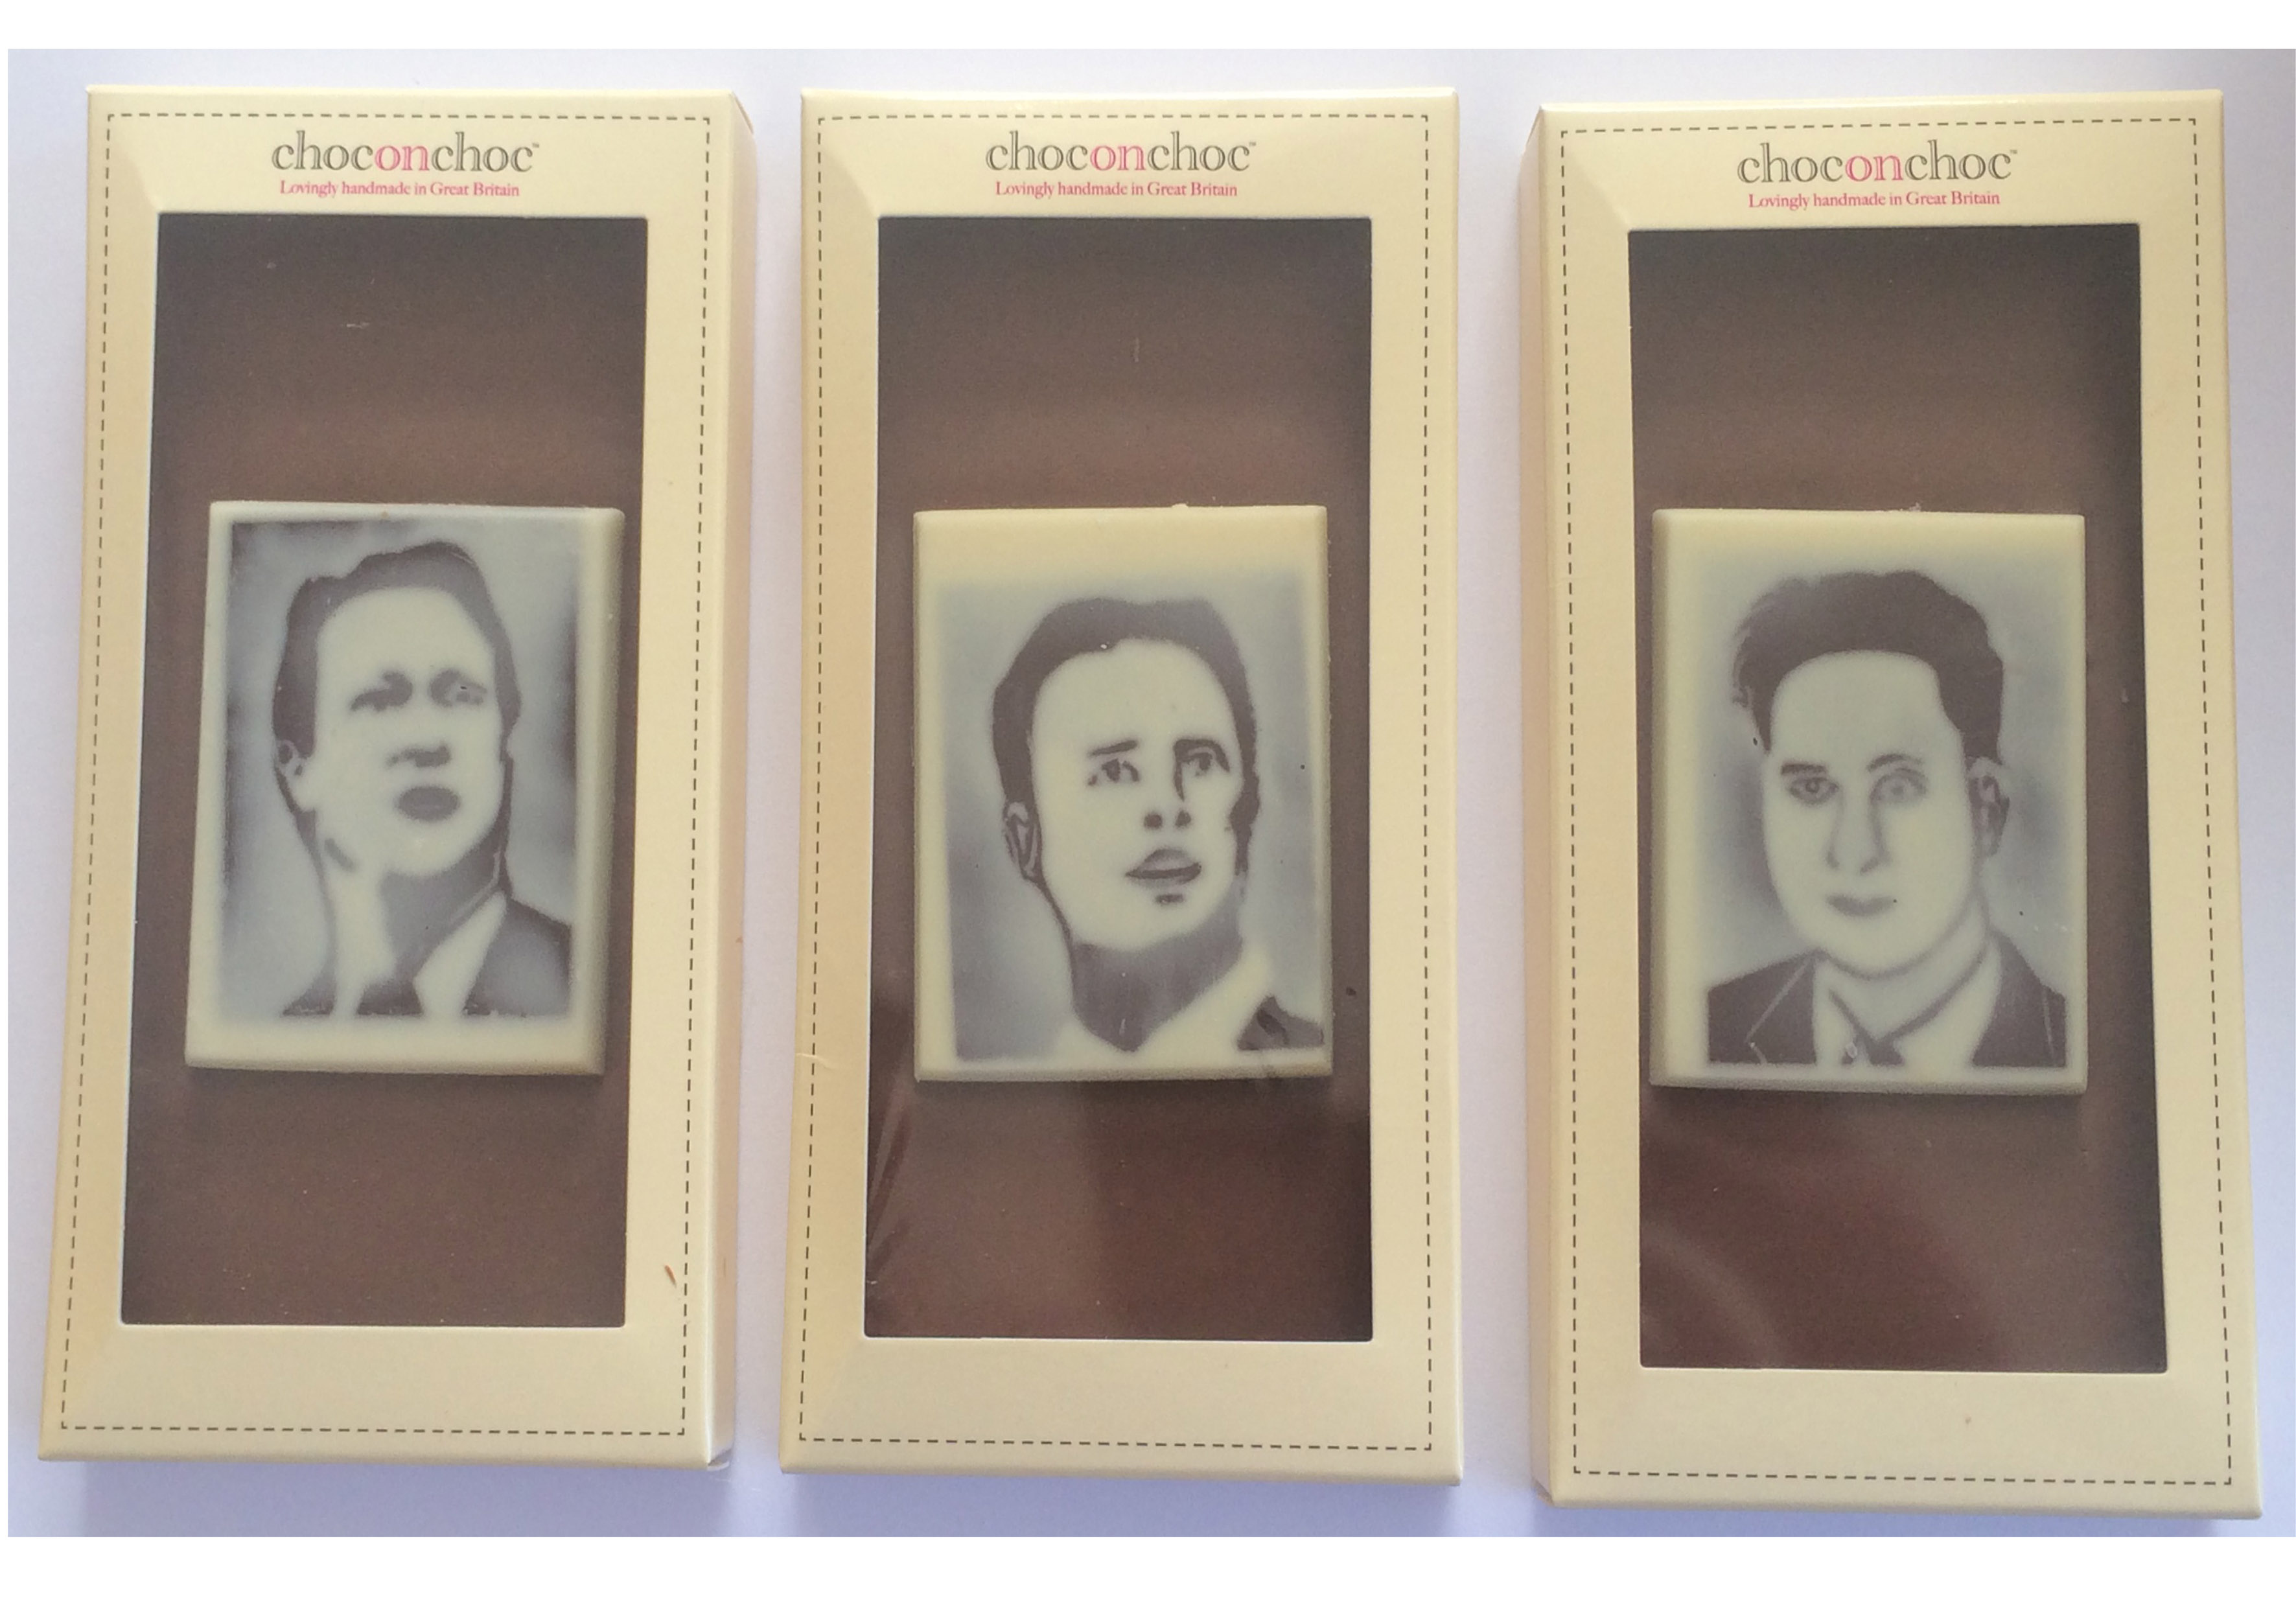 Ed Miliband, David Cameron and Nick Clegg have never looked tastier